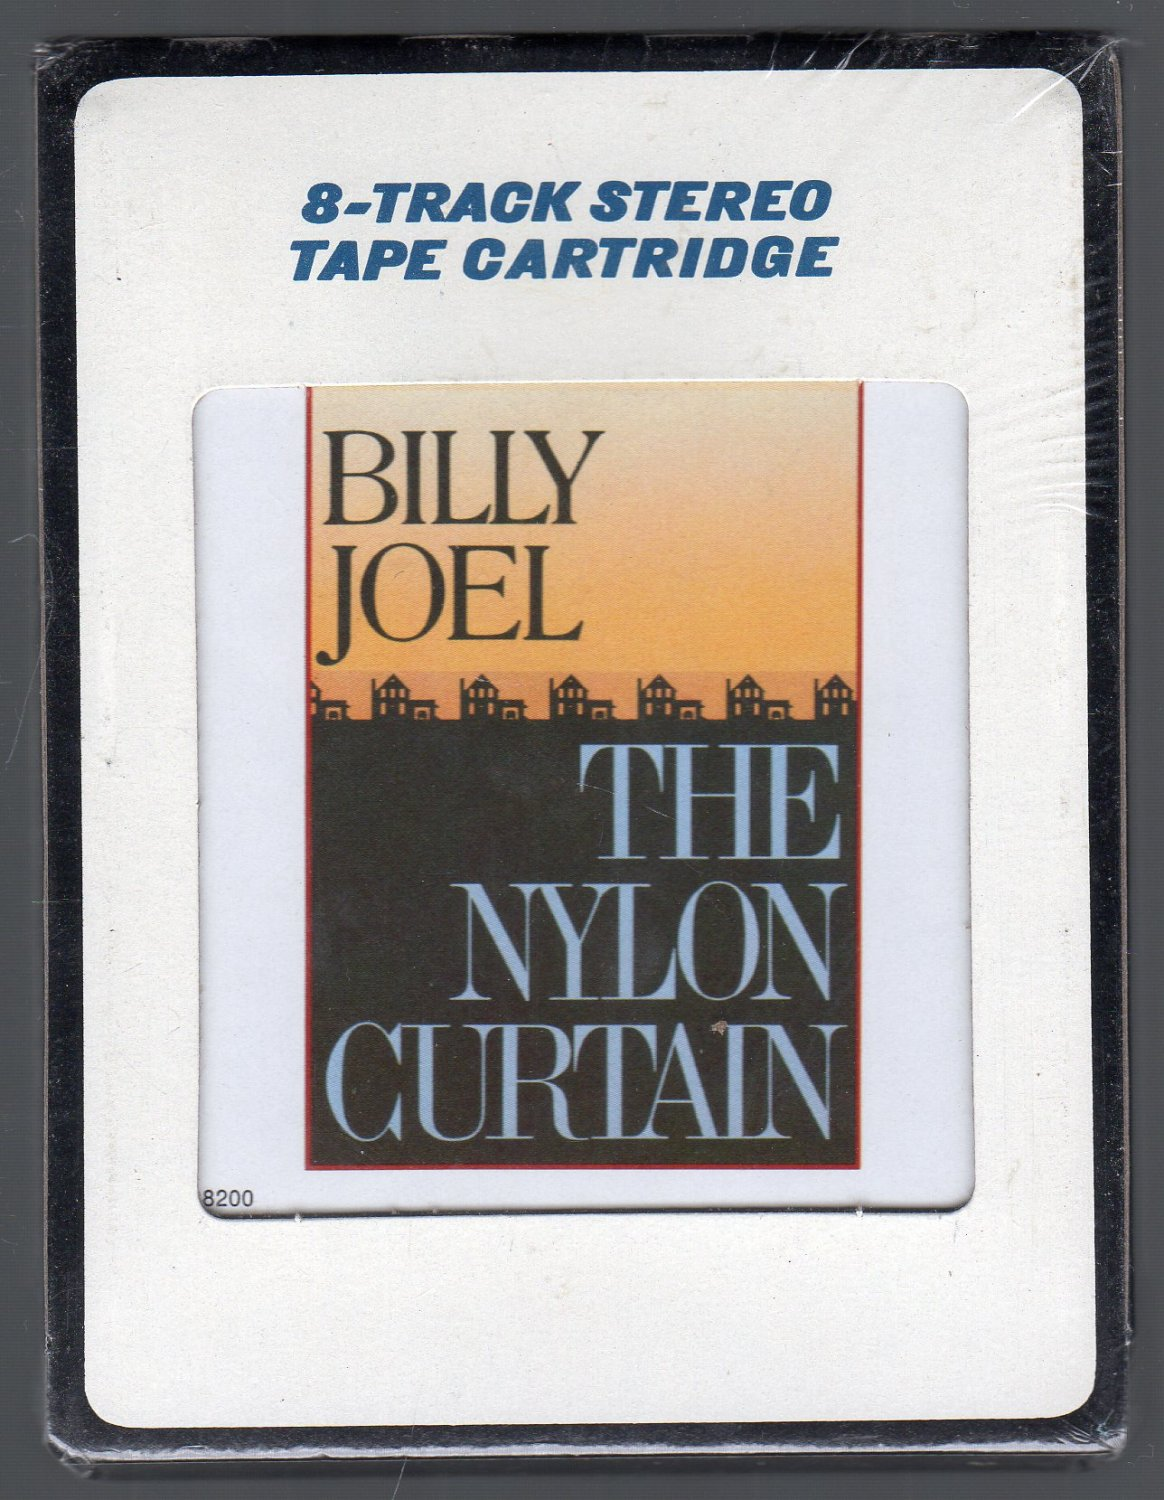 Billy Joel - The Nylon Curtain 1982 CRC Sealed SOLD 8-track tape